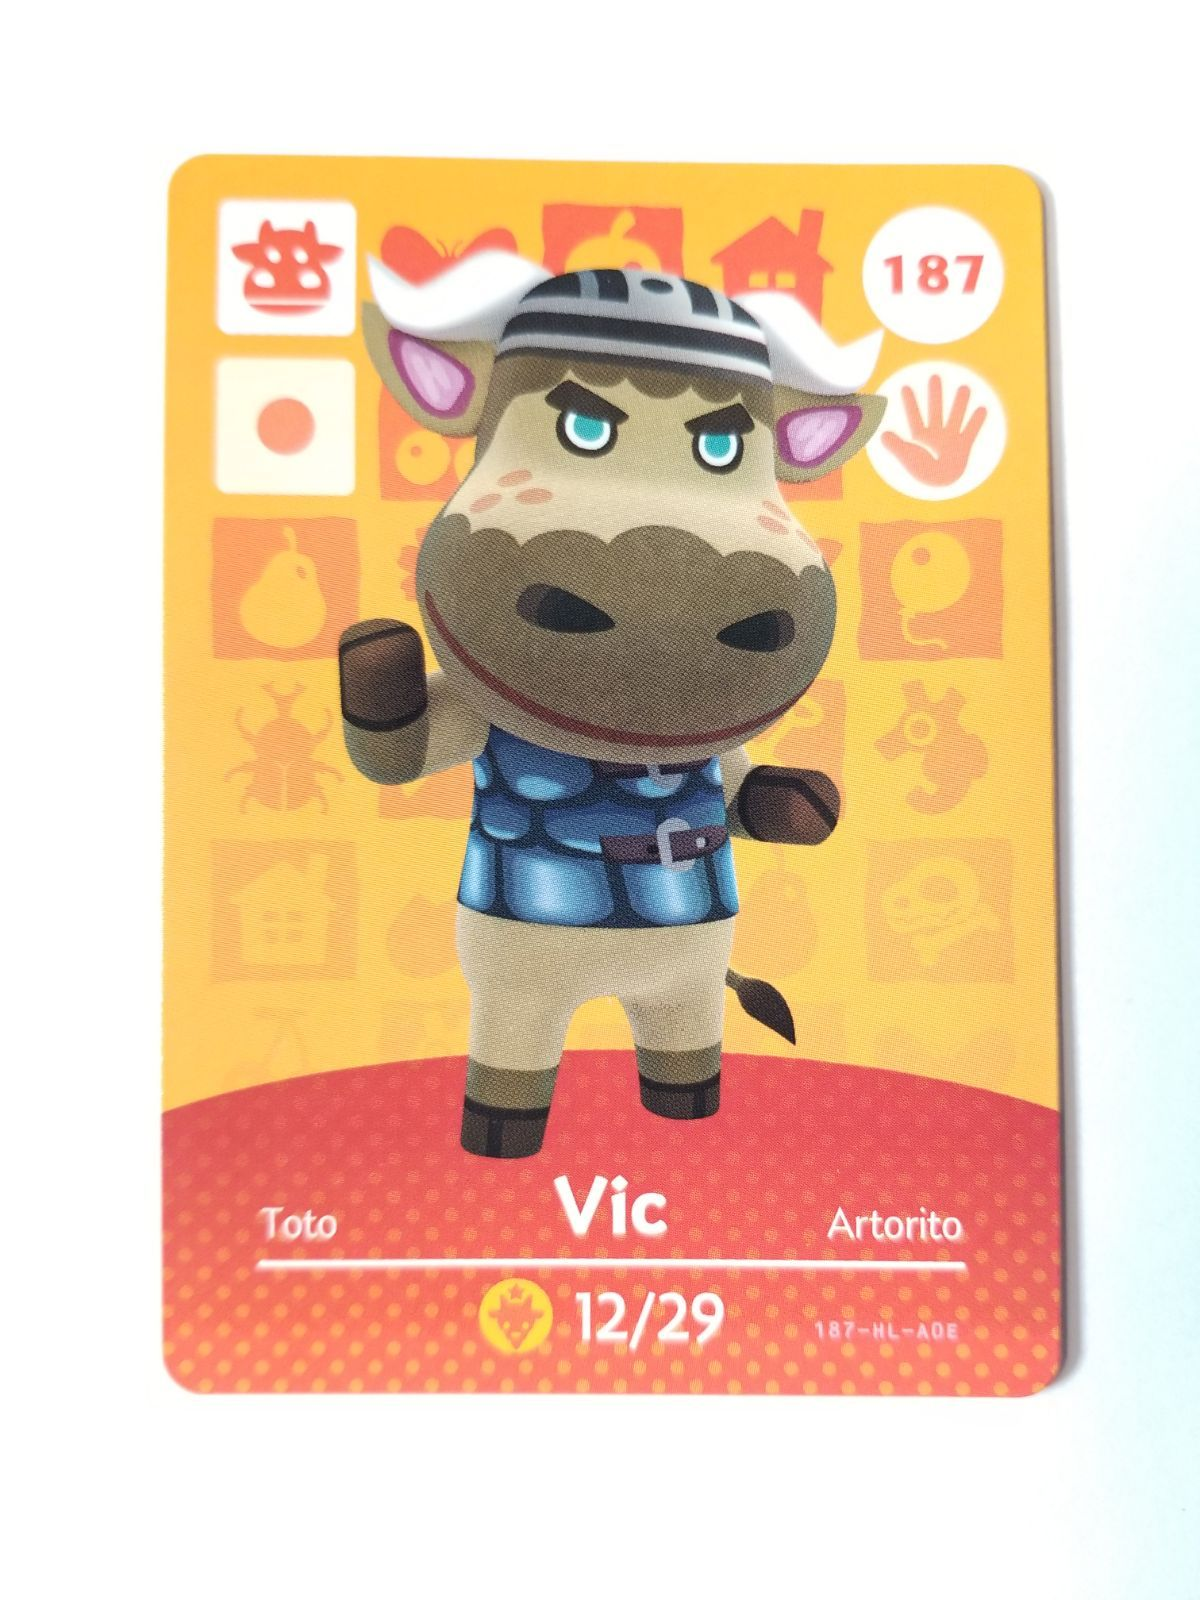 17++ Animal crossing amibo cards images